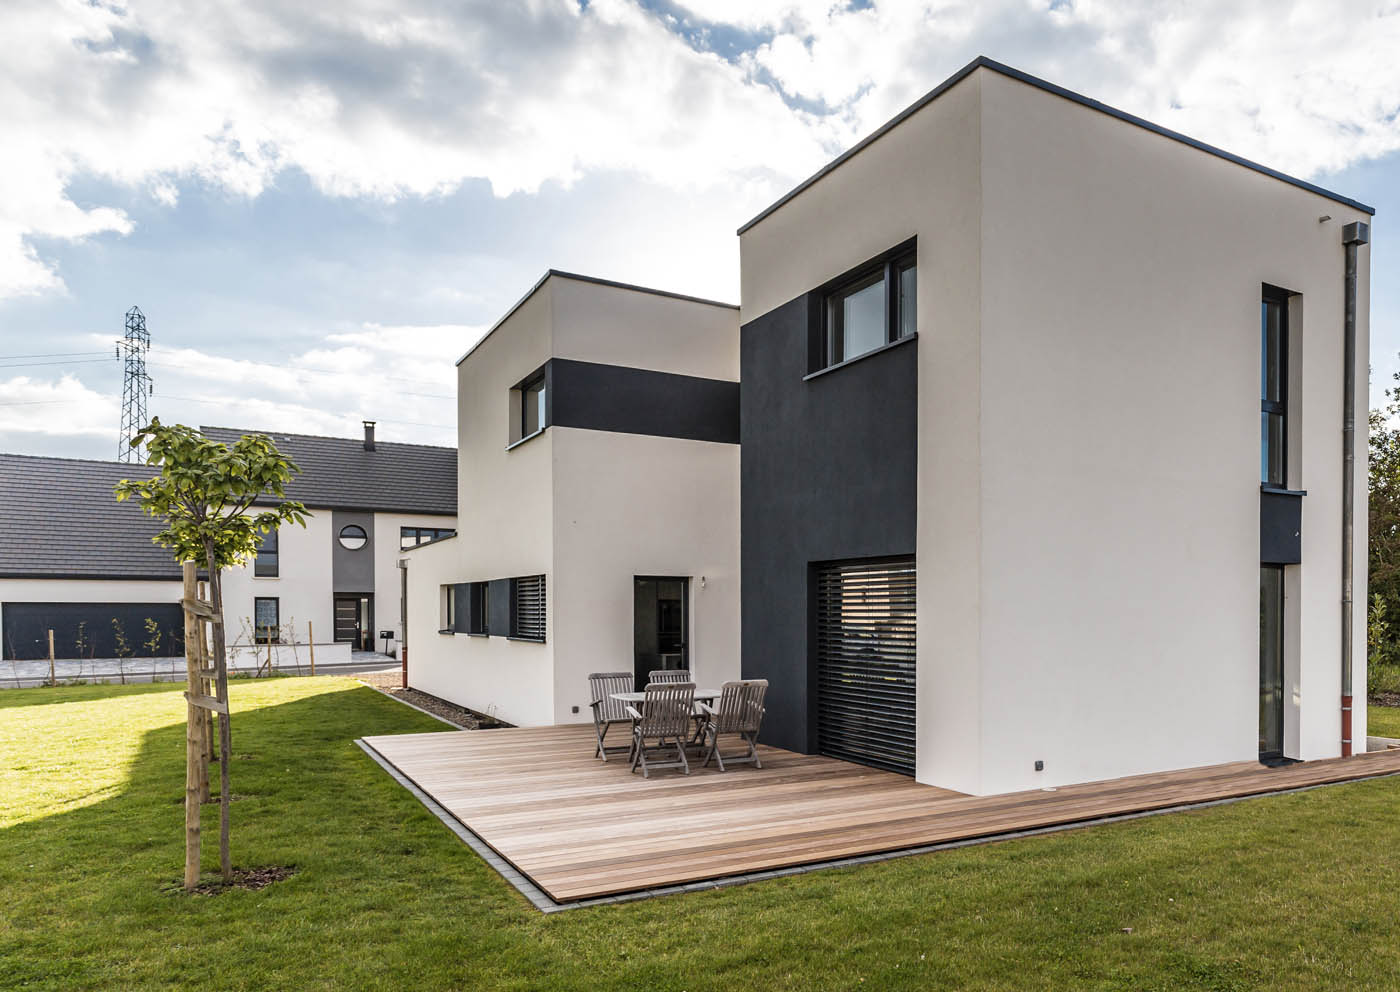 Maison design et performante ossature bois par innov for Design exterieur maison